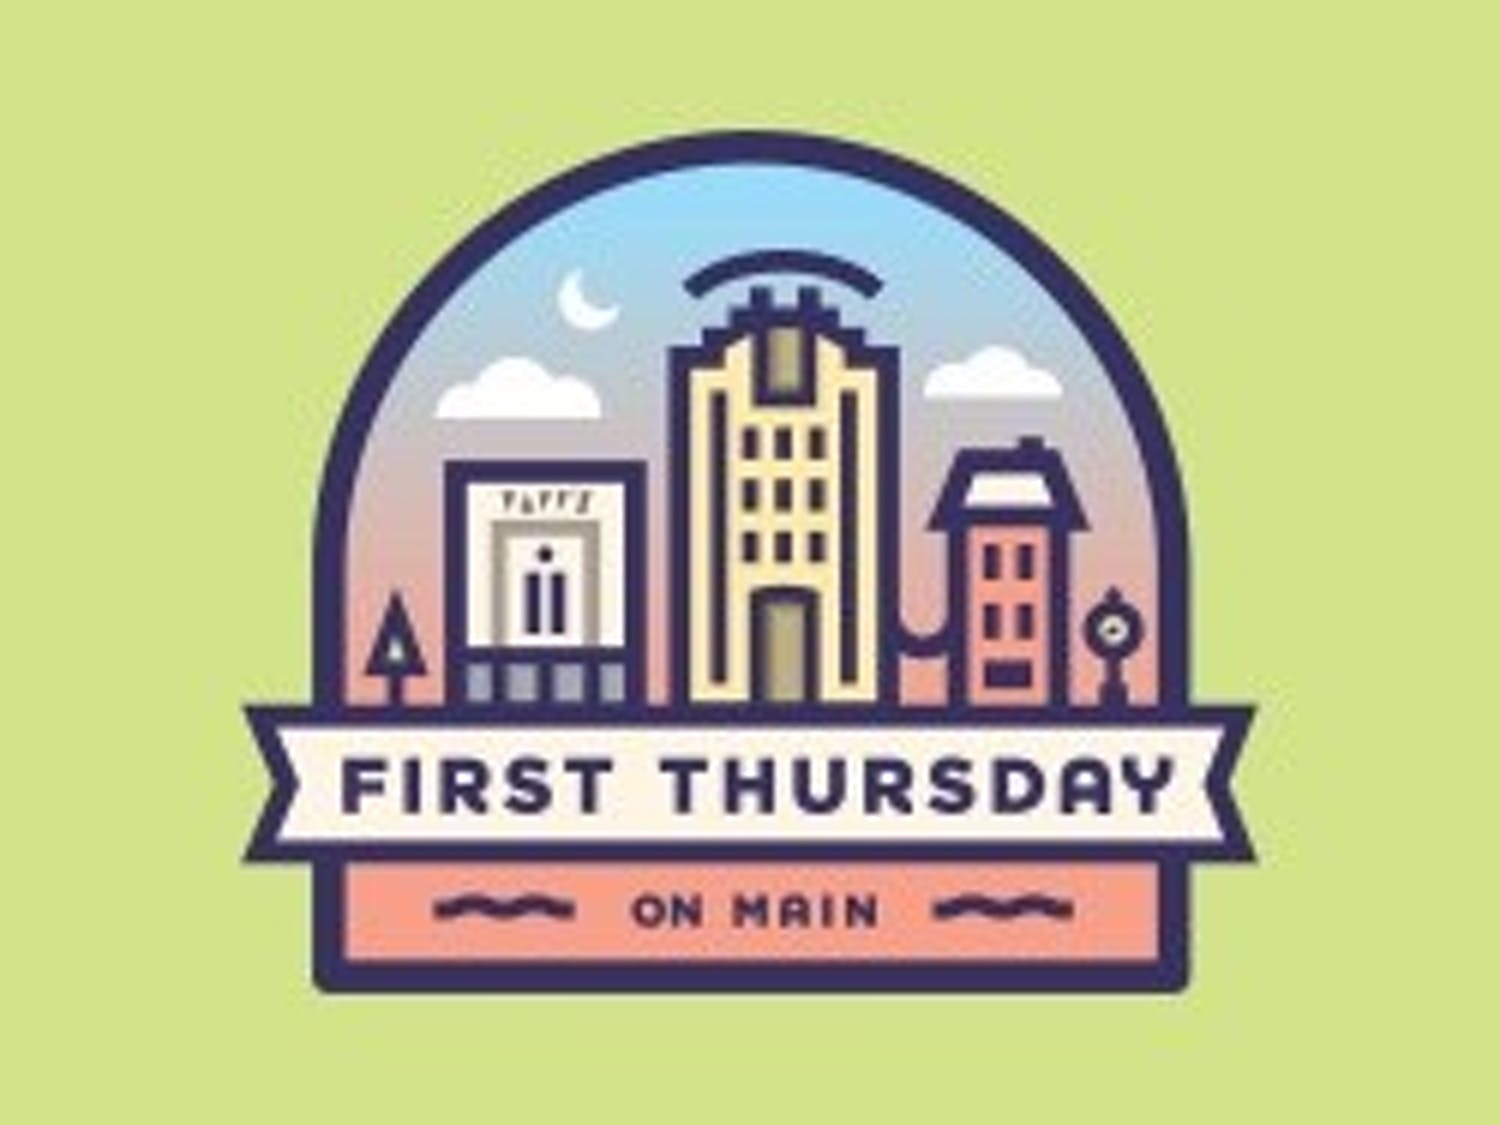 First Thursday on Mainreturns to Columbia on April 7 with local art, music, food and drink.